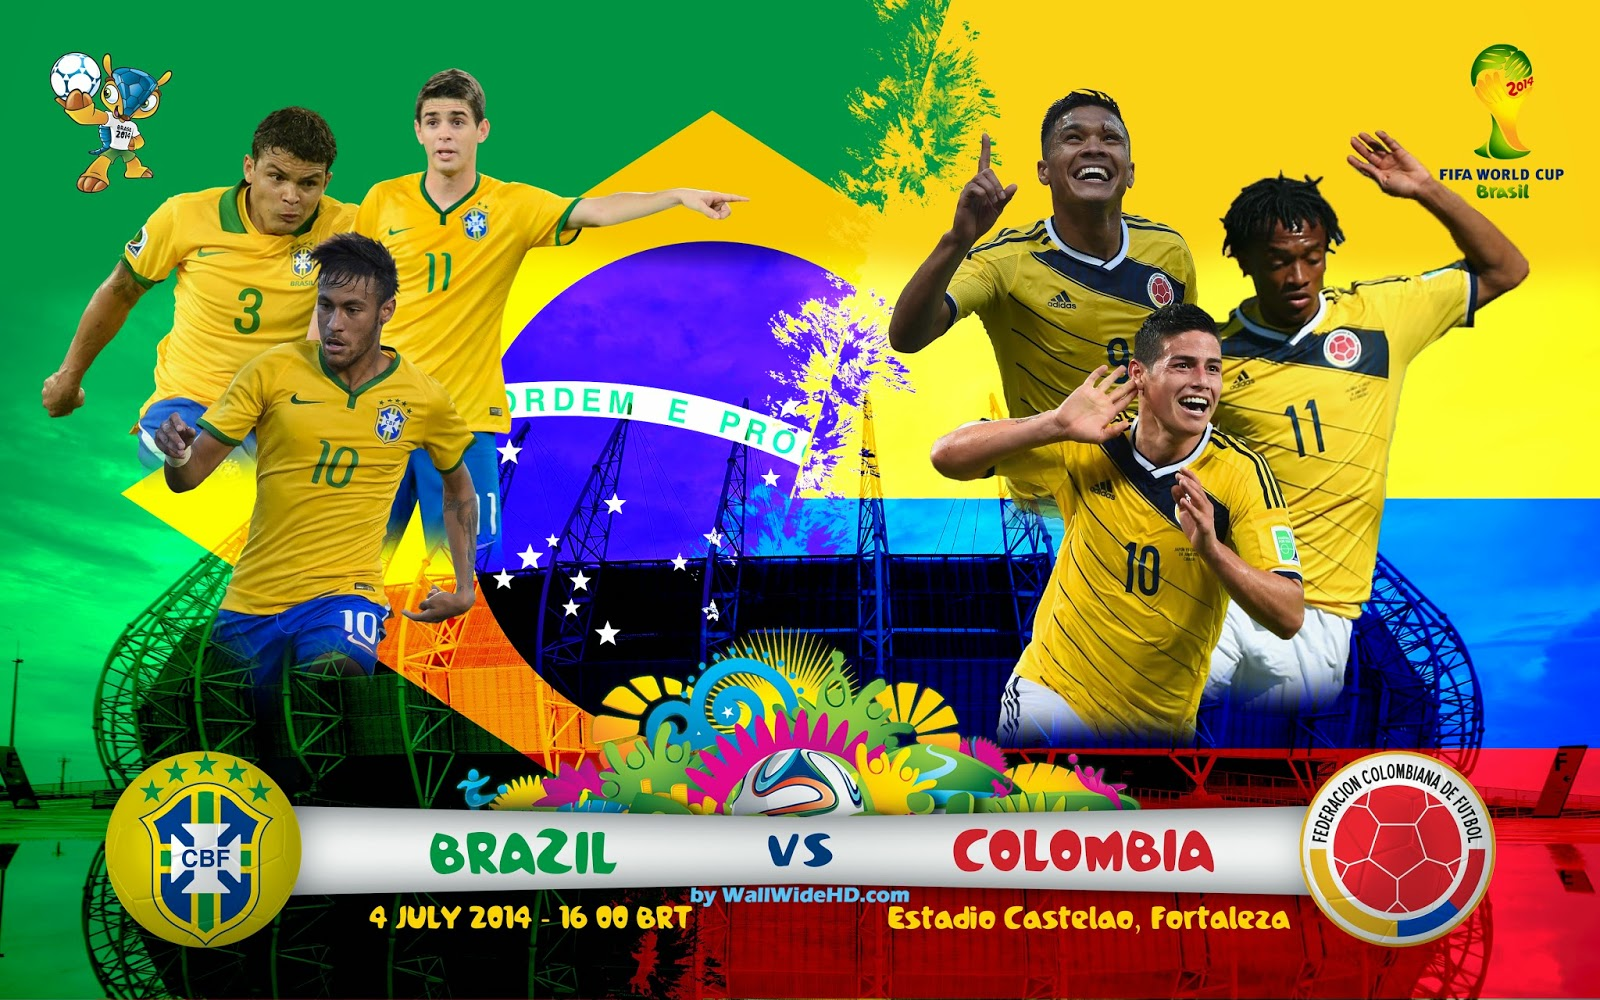 Brazil vs Colombia HD Wallpapers Photos Quarter Finals FIFA World Cup 2014